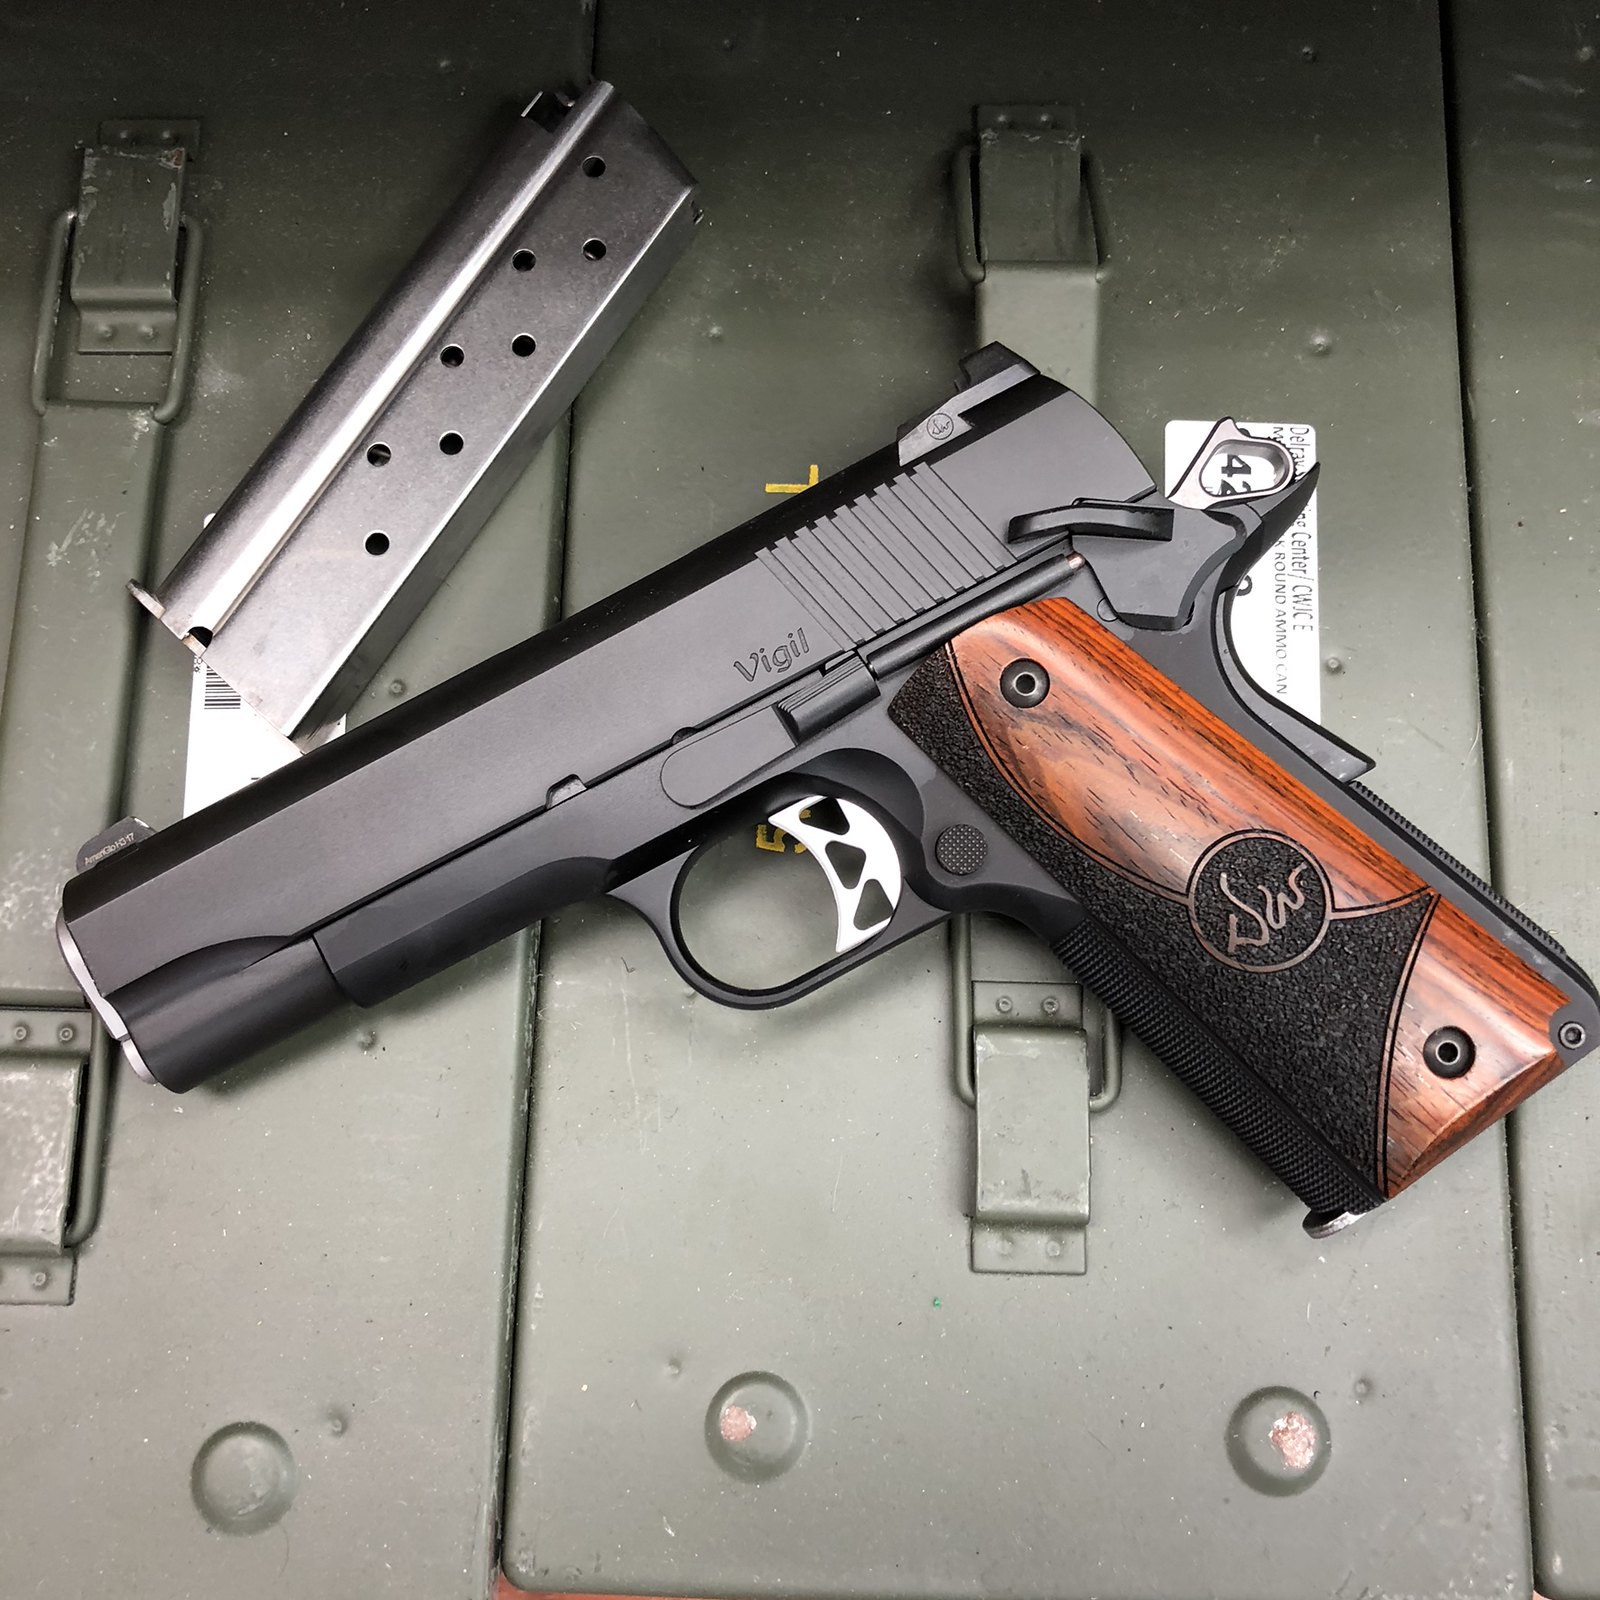 The Vigil The New Entry Level 1911 From Dan Wesson 1911forum